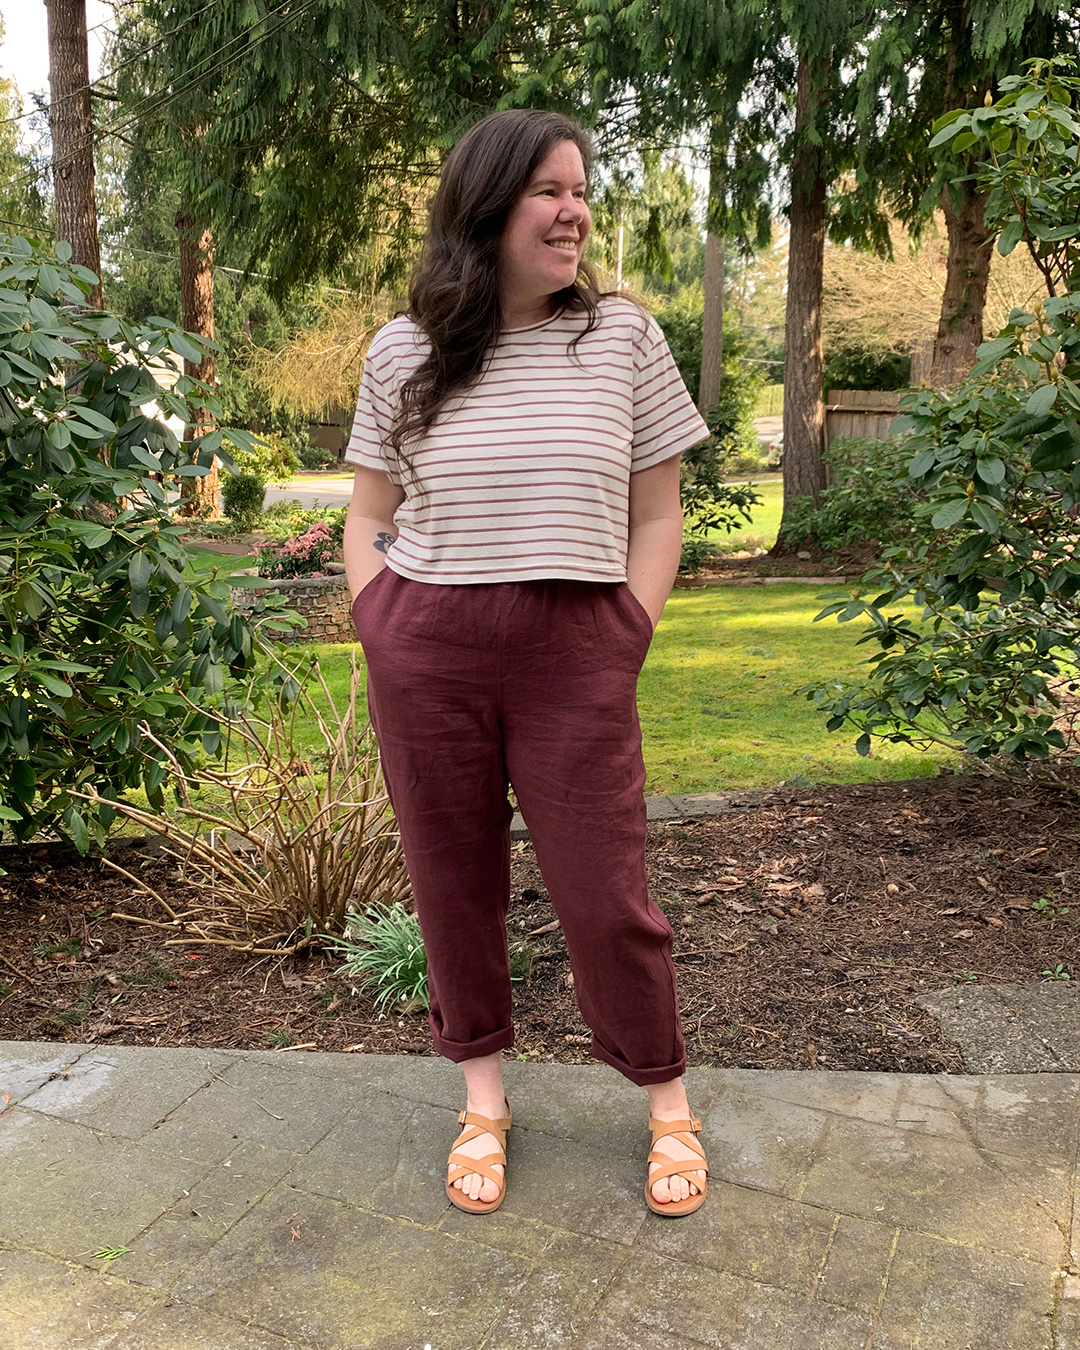 Helen modeling her cropped Jackson Tee paired with burgundy Arden pants, with her hands in her pockets and looking to the side.